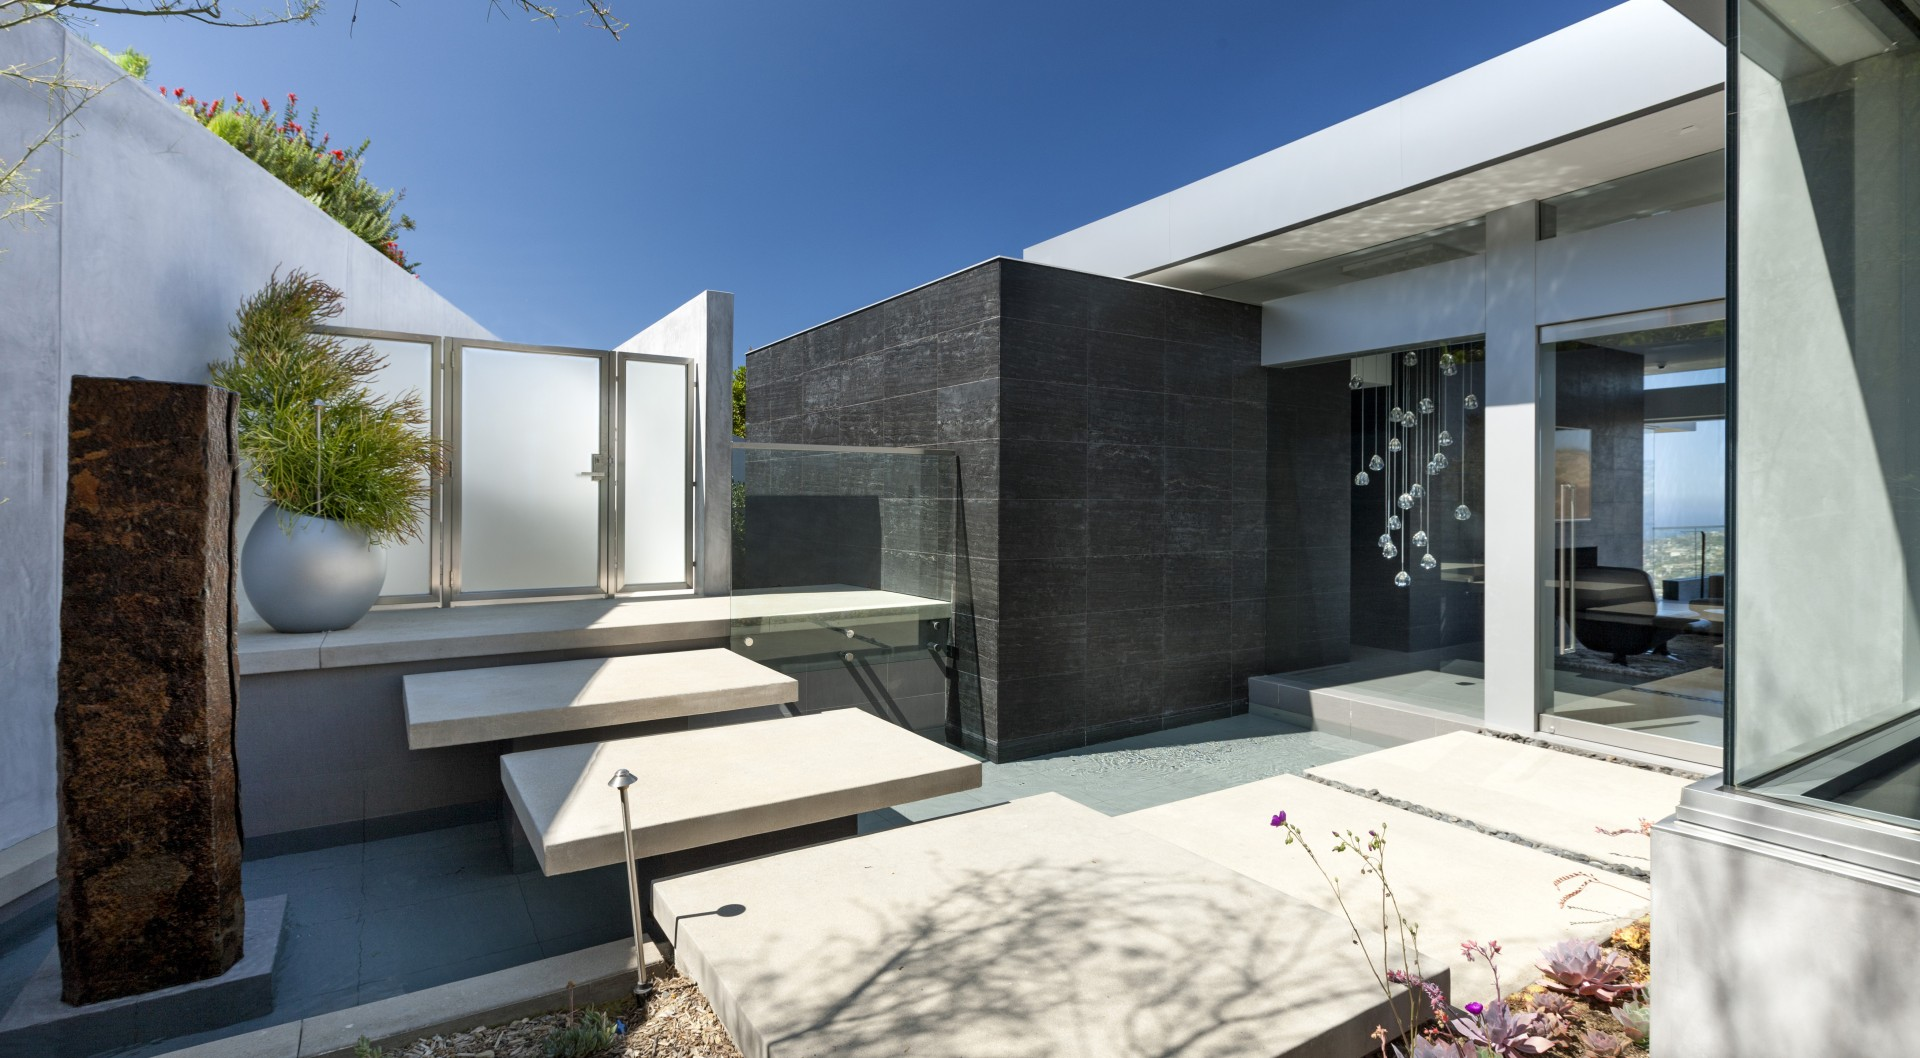 Los angeles laguna beach architecture projects mcclean for Design interieur cours